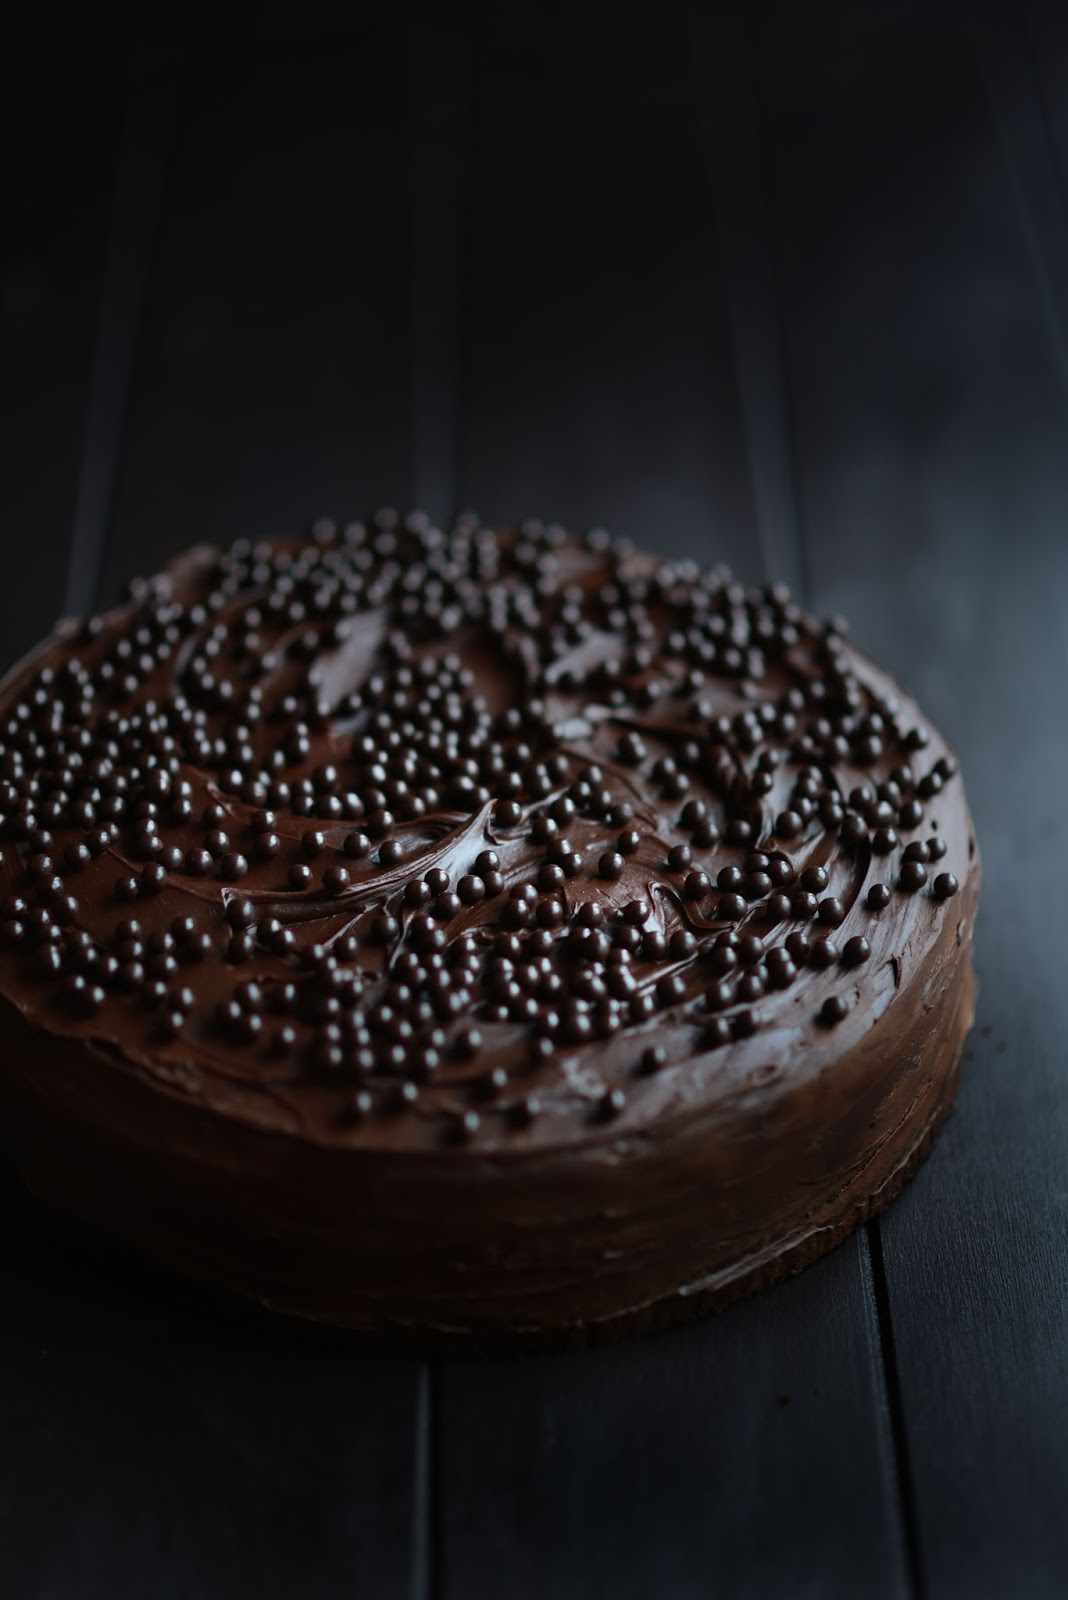 Celebration Chocolate Cake | From The Kitchen | Six Sinful Chocolate Desserts